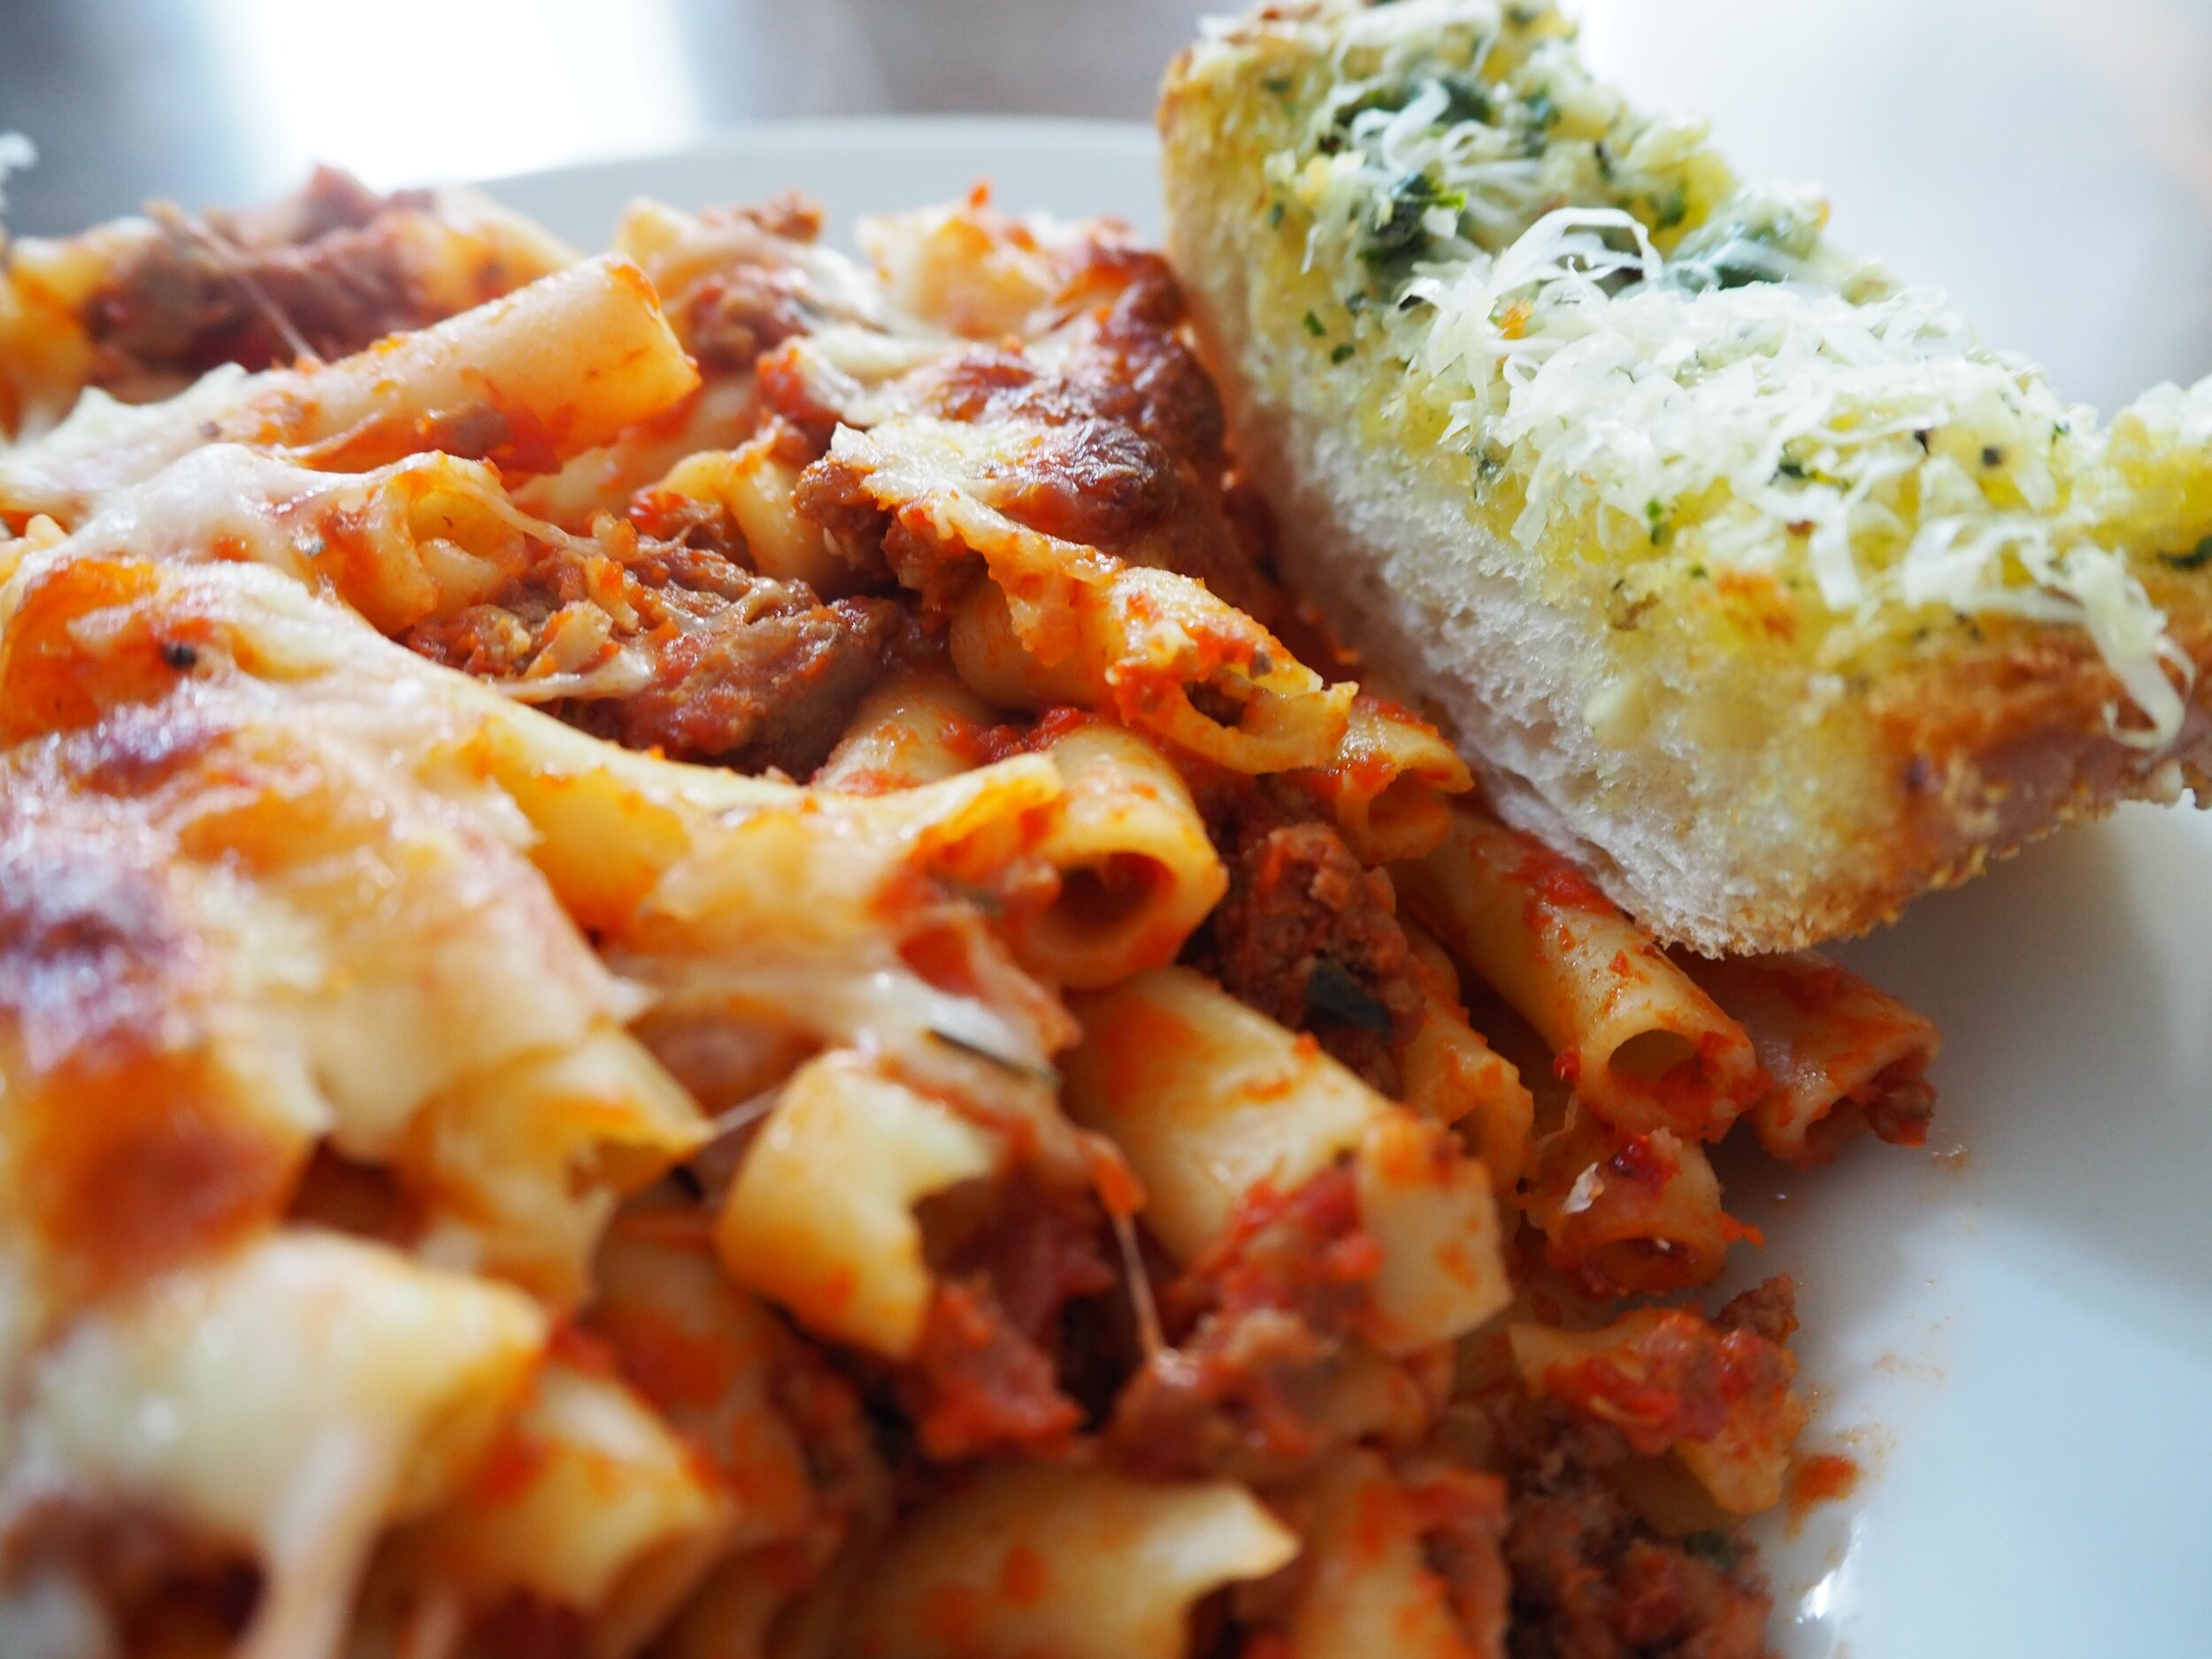 pasta with red sauce and slice of bread